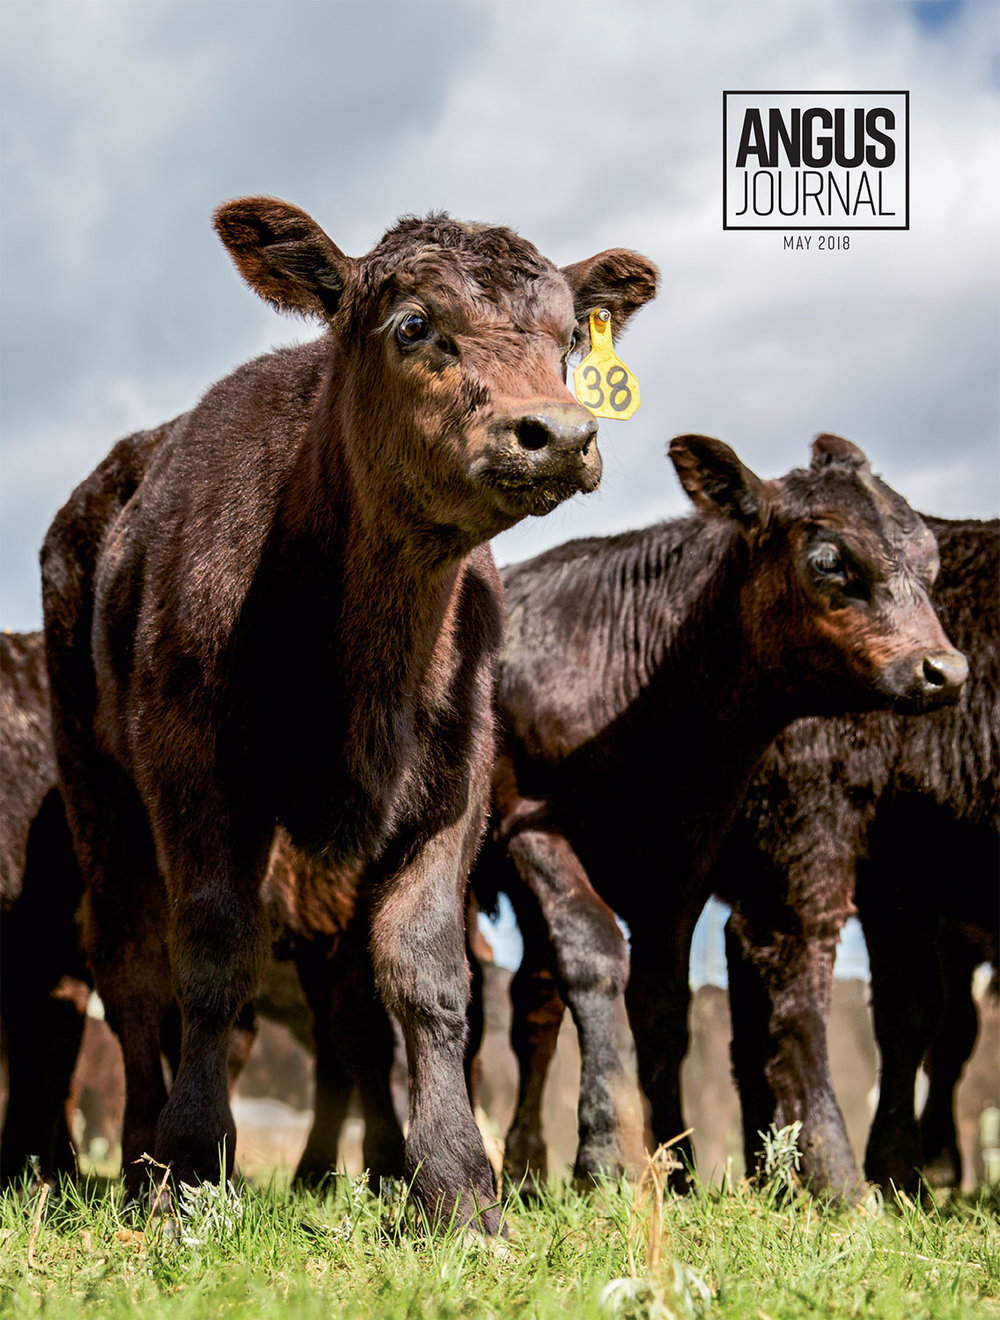 Beef Cattle Stock Images Published on Cover of Angus Journal Magazine